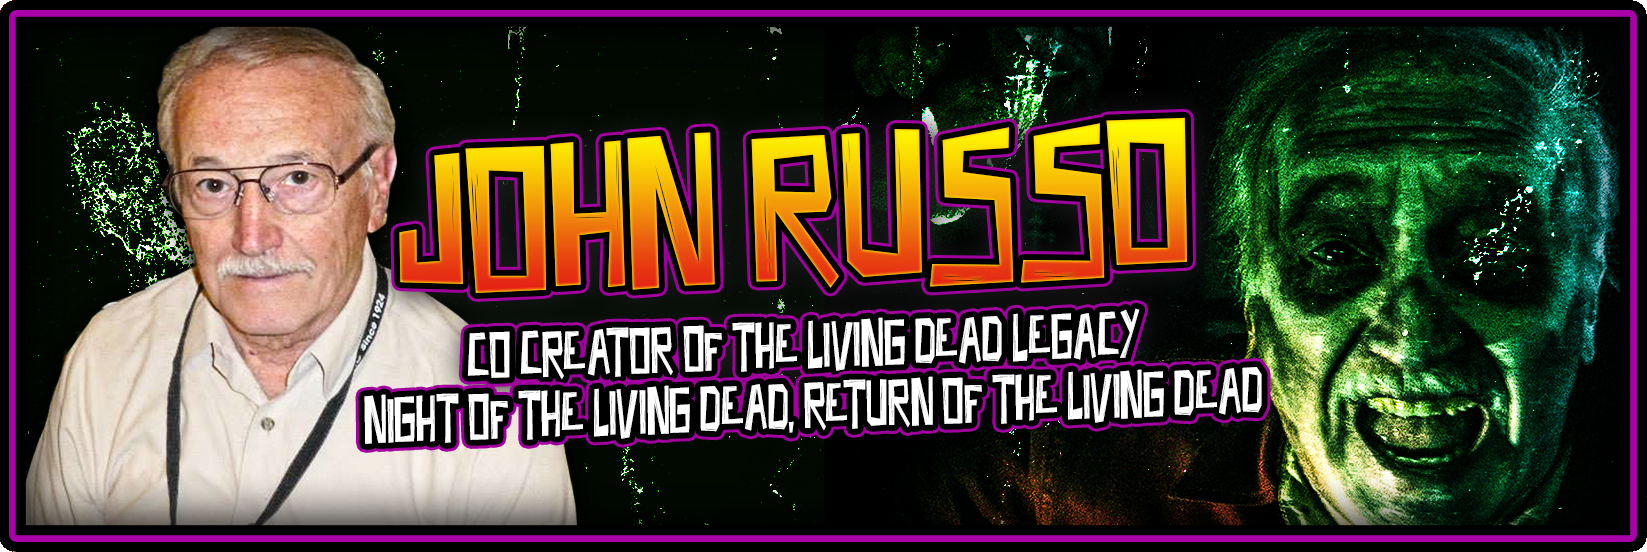 John Russo Banner.png